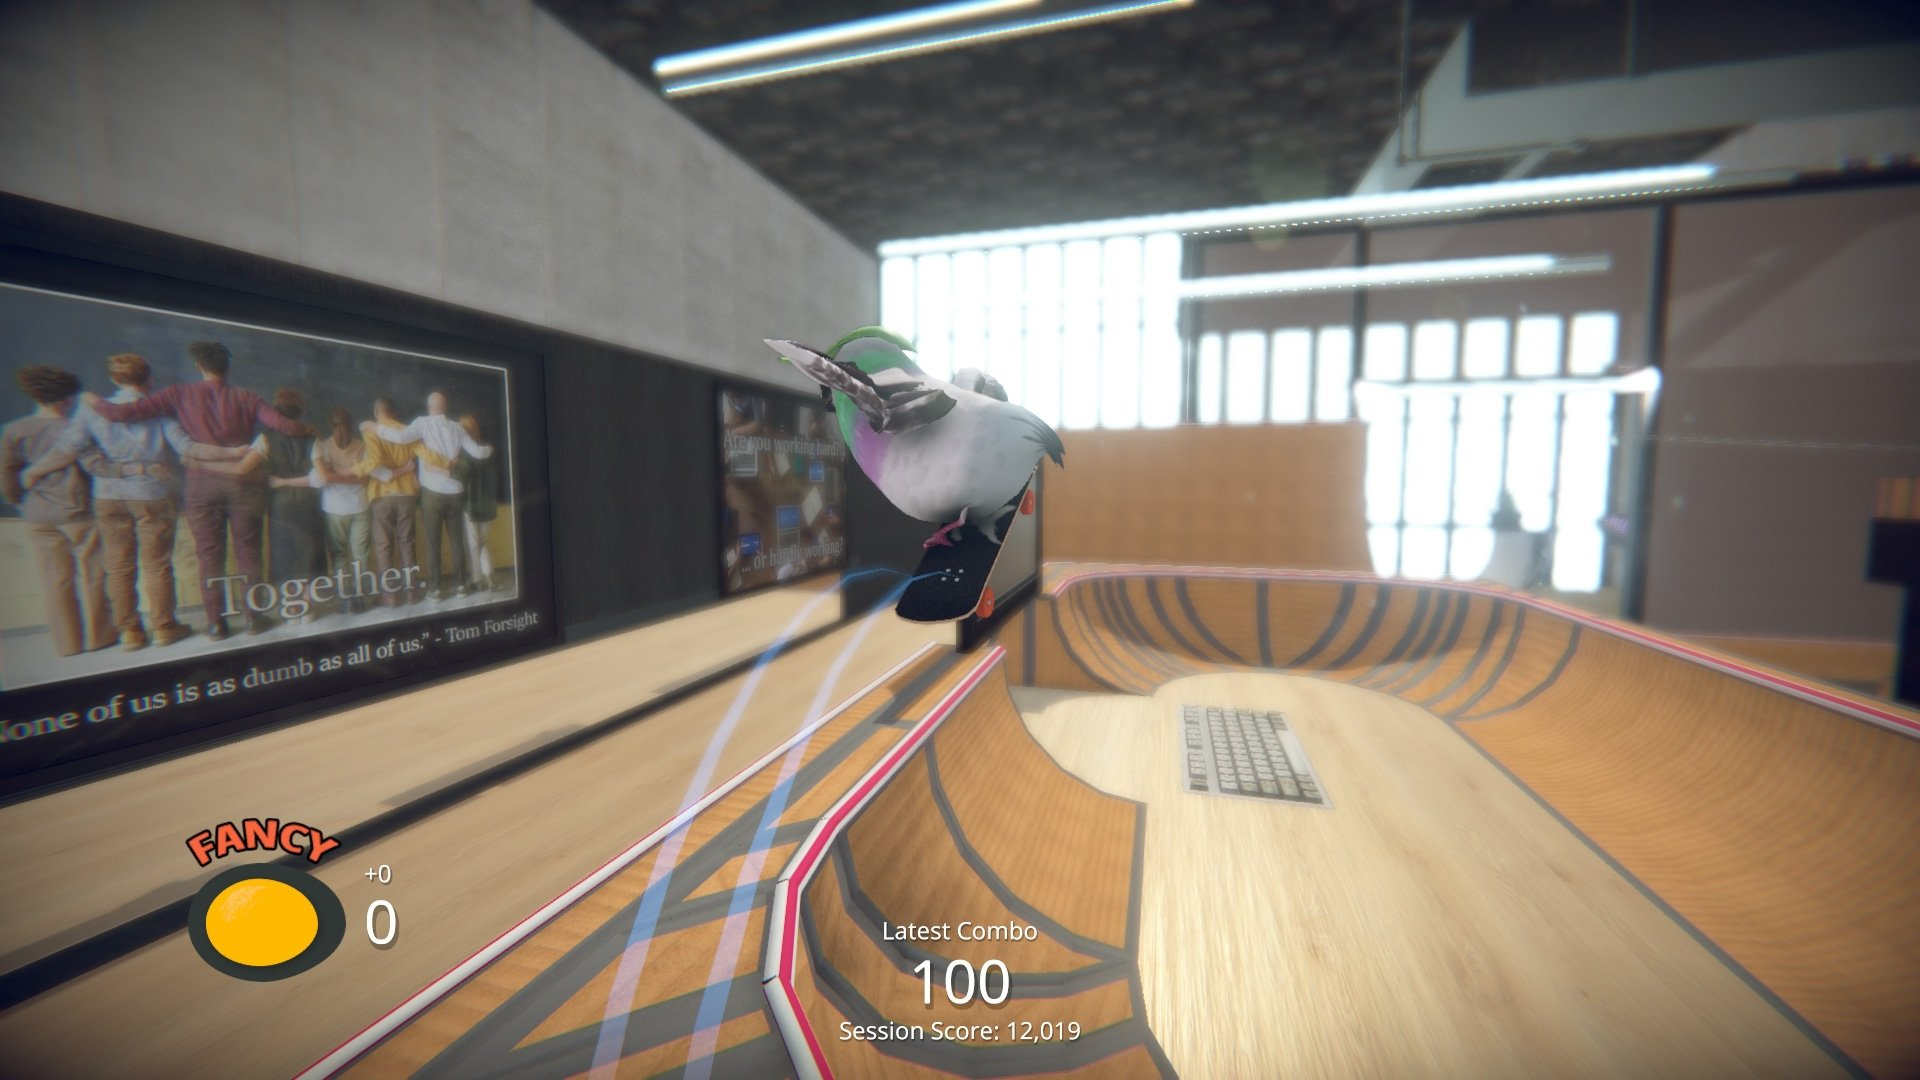 SkateBird's new office video puts the 'grind' in 'daily grind' screenshot